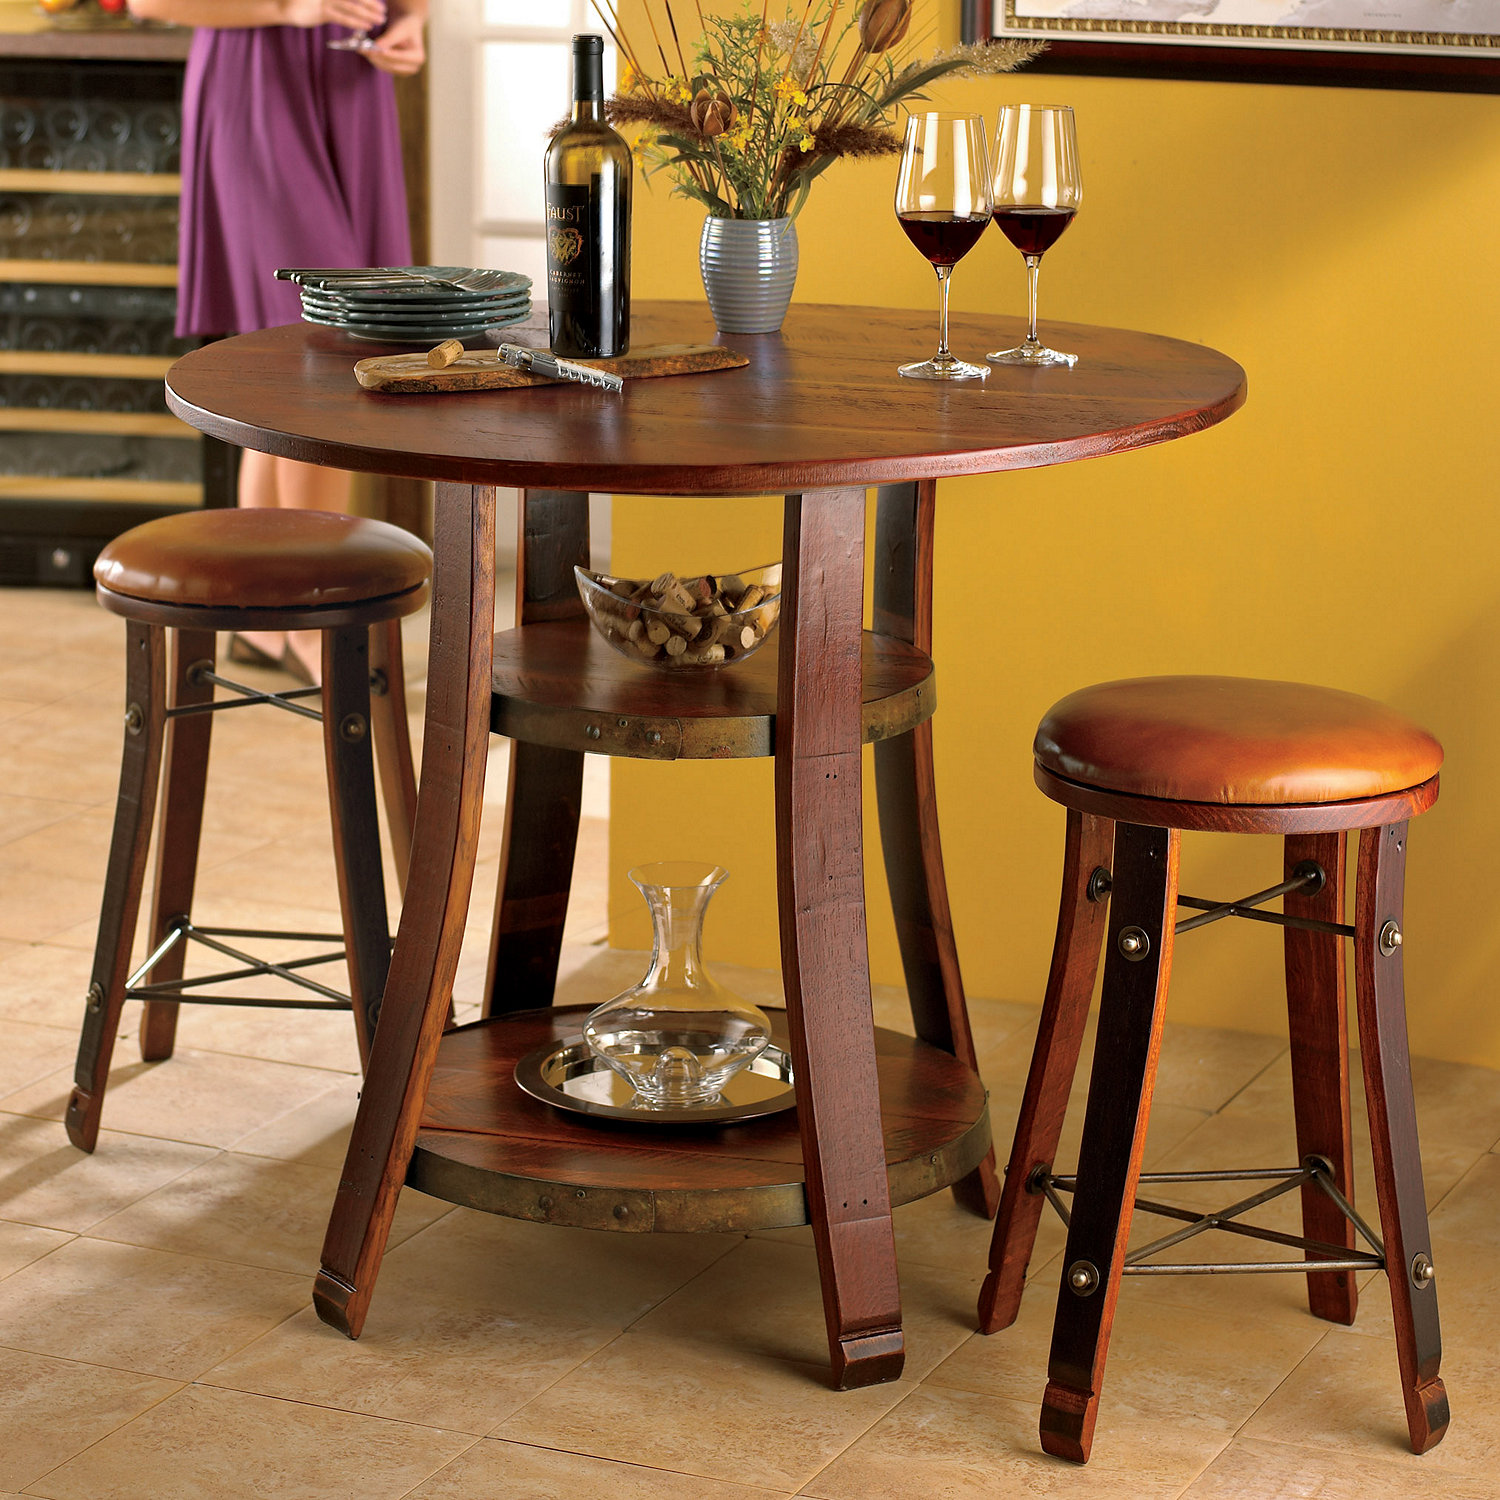 Preparing Zoom & Vintage Oak Bistro Table u0026 Bar Stools with Leather Seats - Wine ... islam-shia.org